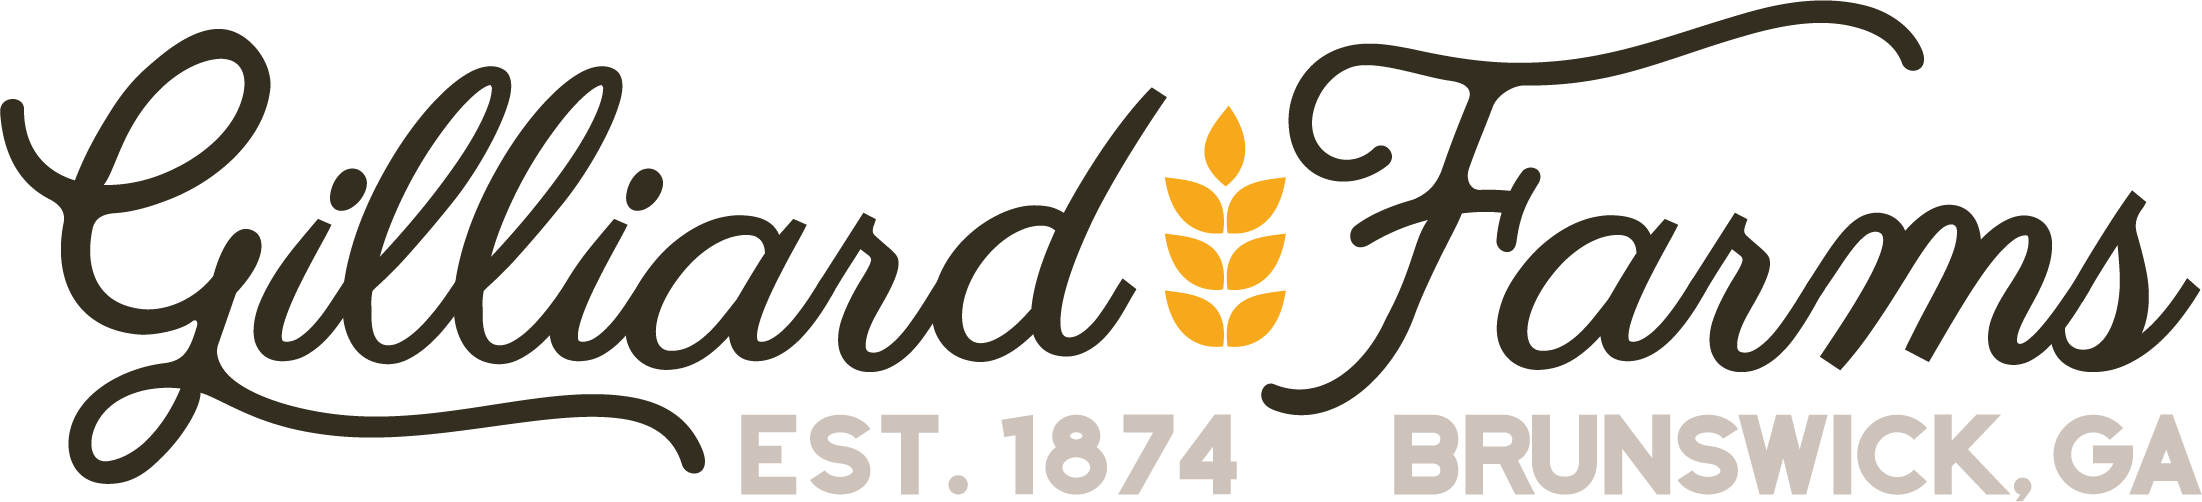 Gilliard_Farms_Logo.png